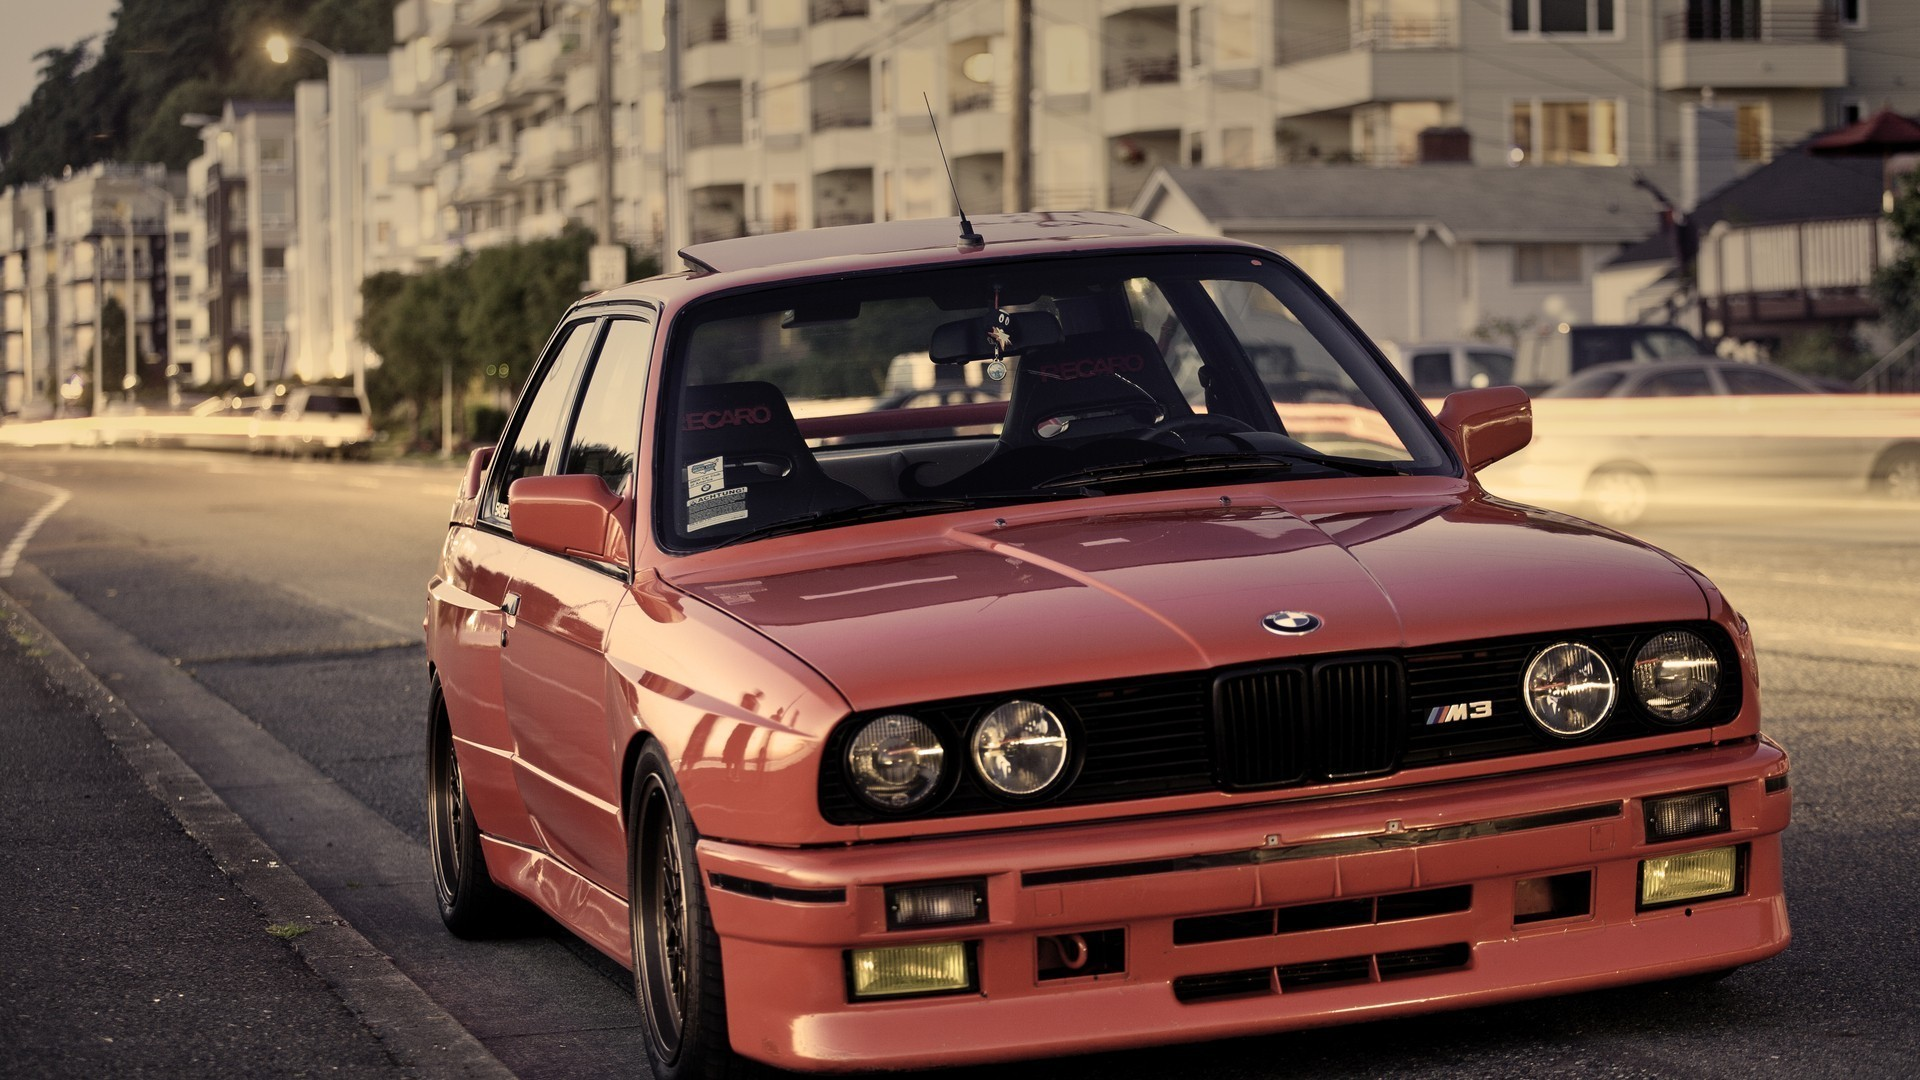 1366x768 Hd Bmw E36 Car Wallpapers Posted By Zoey Cunningham